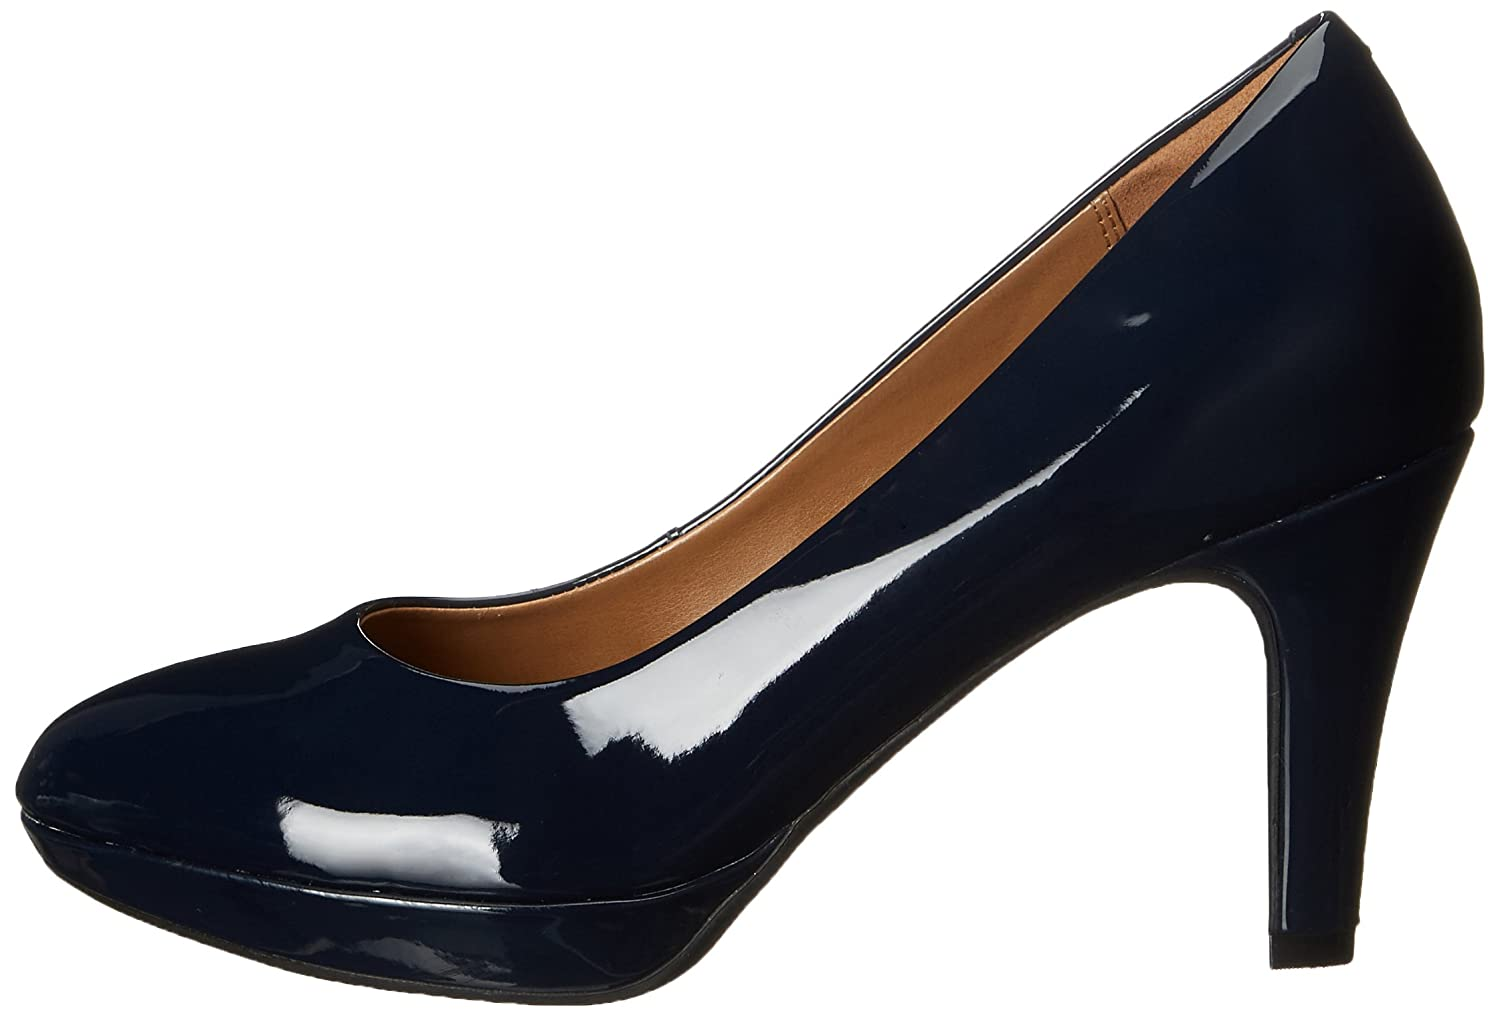 CLARKS Women's Brier 9.5 Dolly Dress Pump B012QPBJ92 9.5 Brier B(M) US|Navy 2a201c